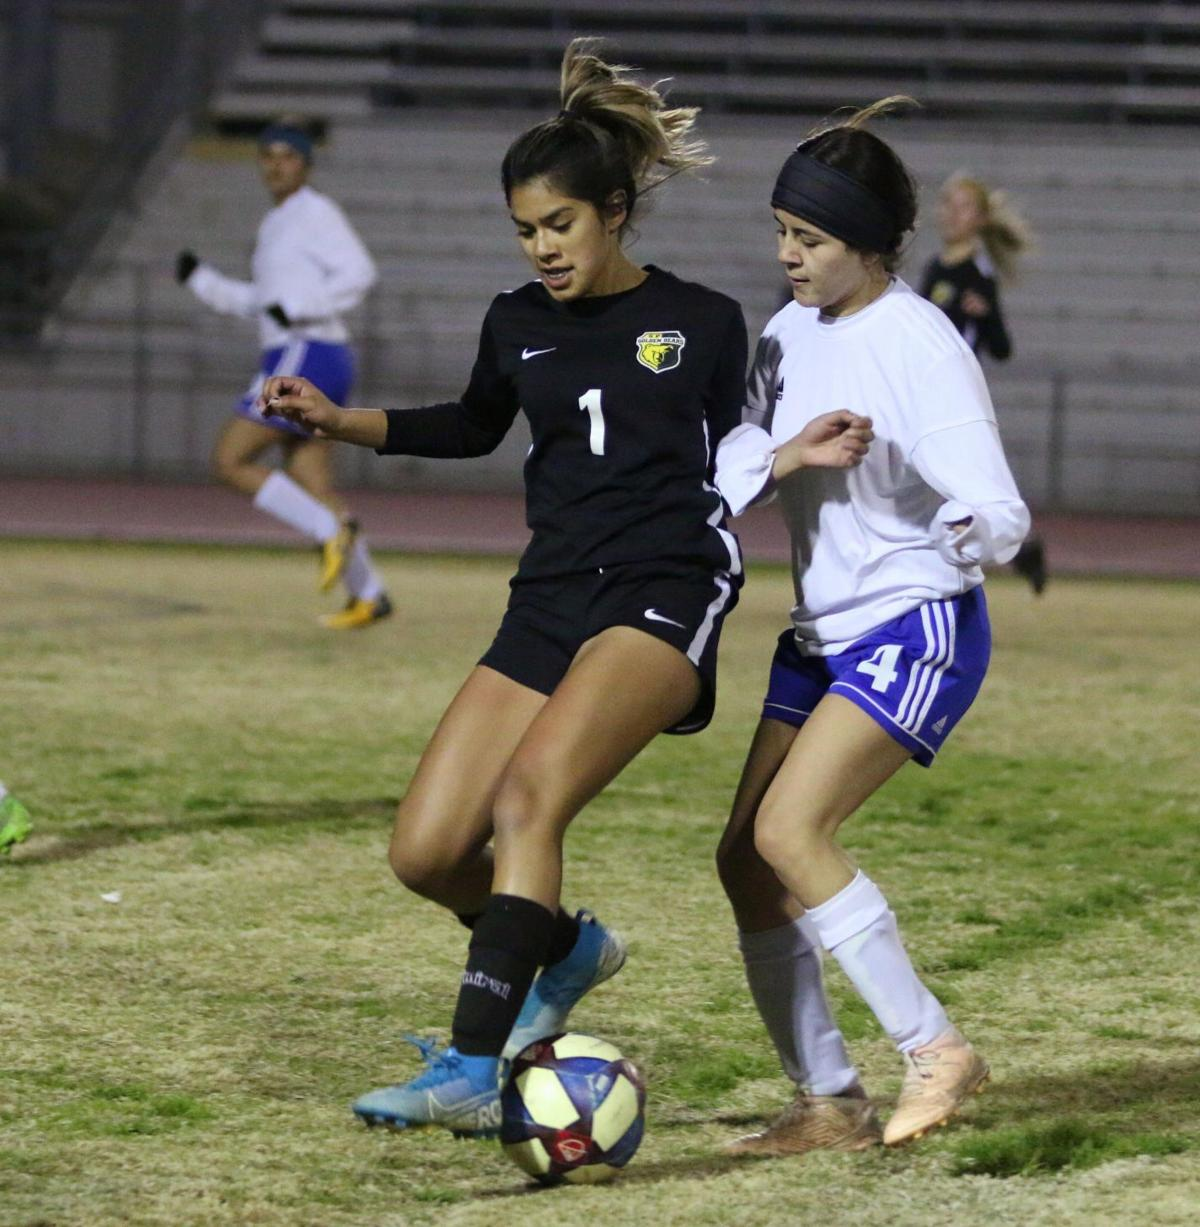 Golden Bears complete first-ever perfect league season with shutout victory